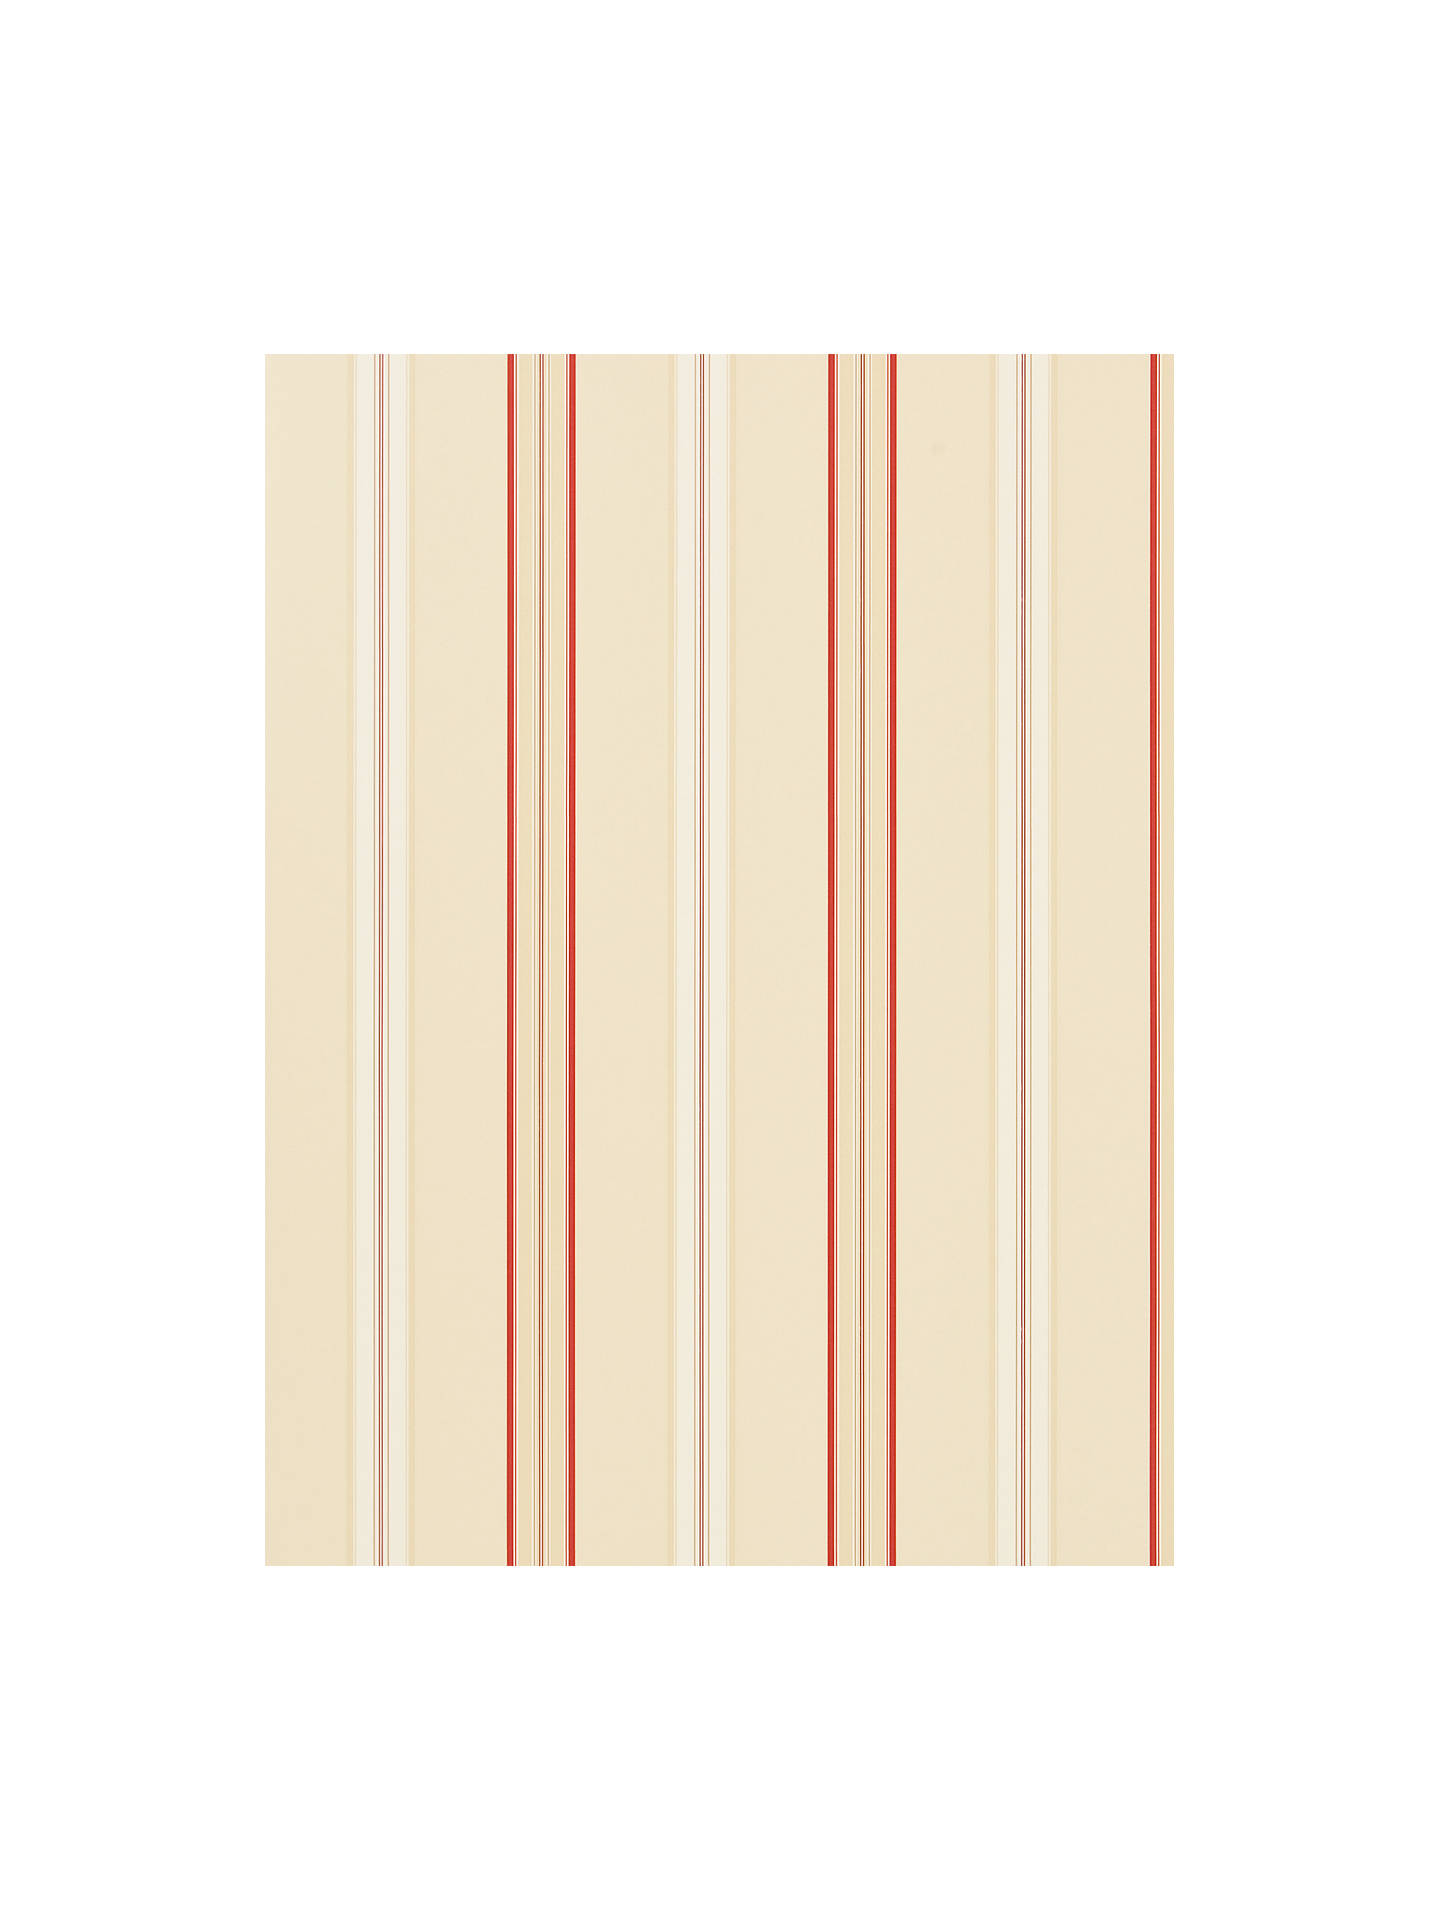 BuyRalph Lauren Dunston Stripe Wallpaper, PRL054/06 Online at johnlewis.com